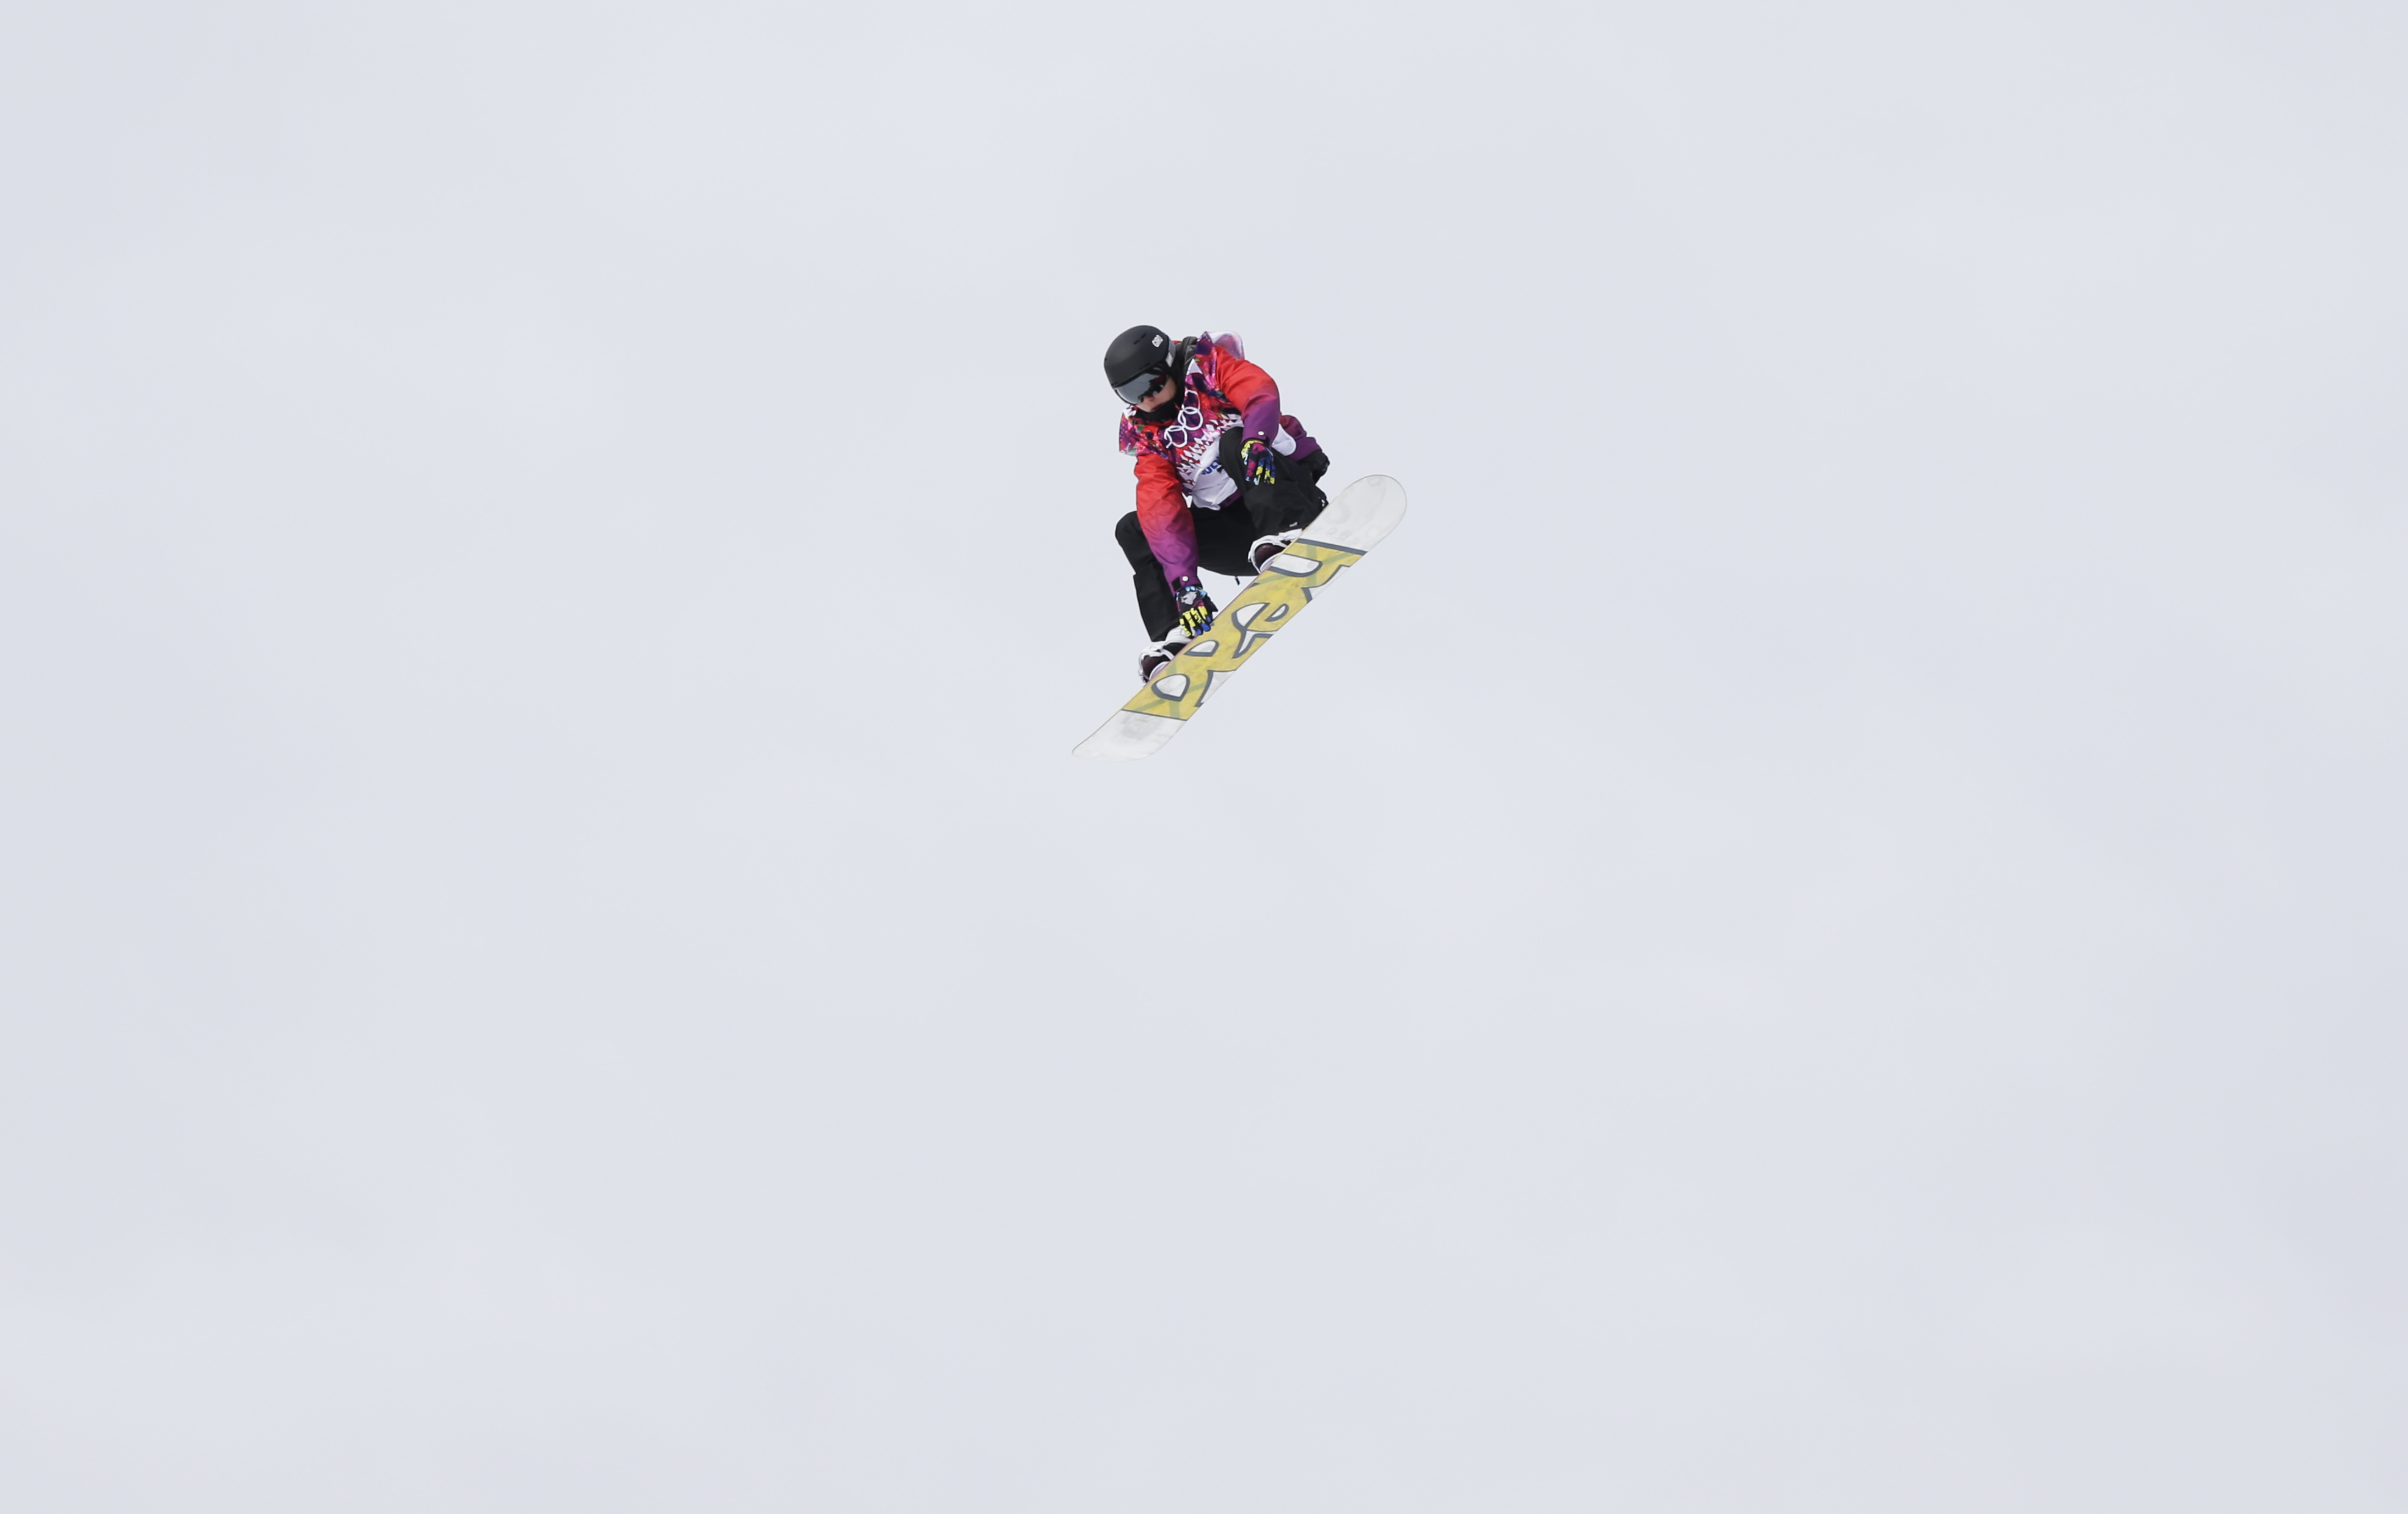 Britain's Aimee Fuller takes a jump during the women's snowboard slopestyle semifinal on Sunday.